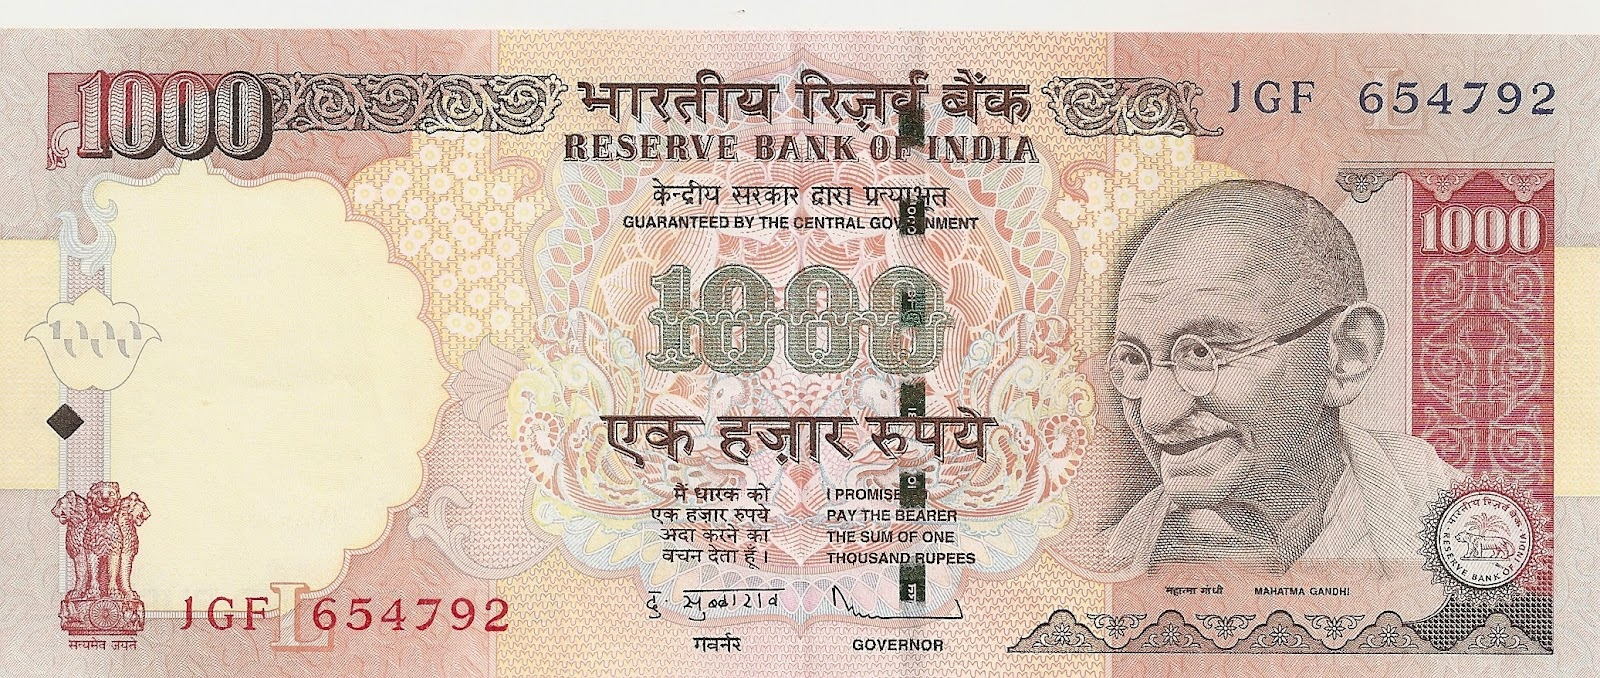 The Reserve Bank of India (RBI) is the central bank of India. History It was established on April 1, , in accordance with the provisions of the Reserve Bank of India Act, The Central Office of the Reserve Bank was initially established in Calcutta but later, was permanently moved to.